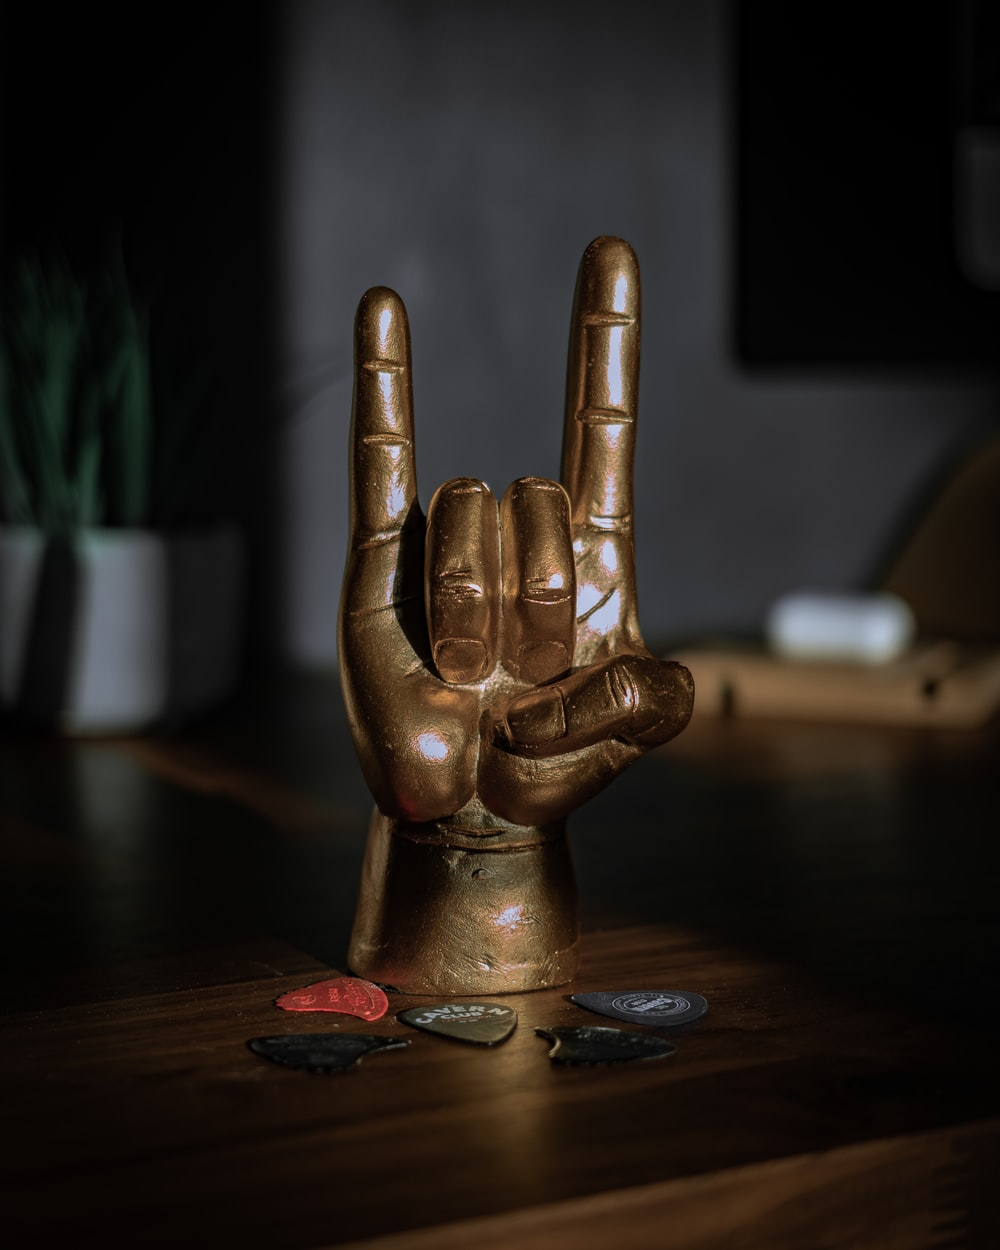 gold human figurine on brown wooden table